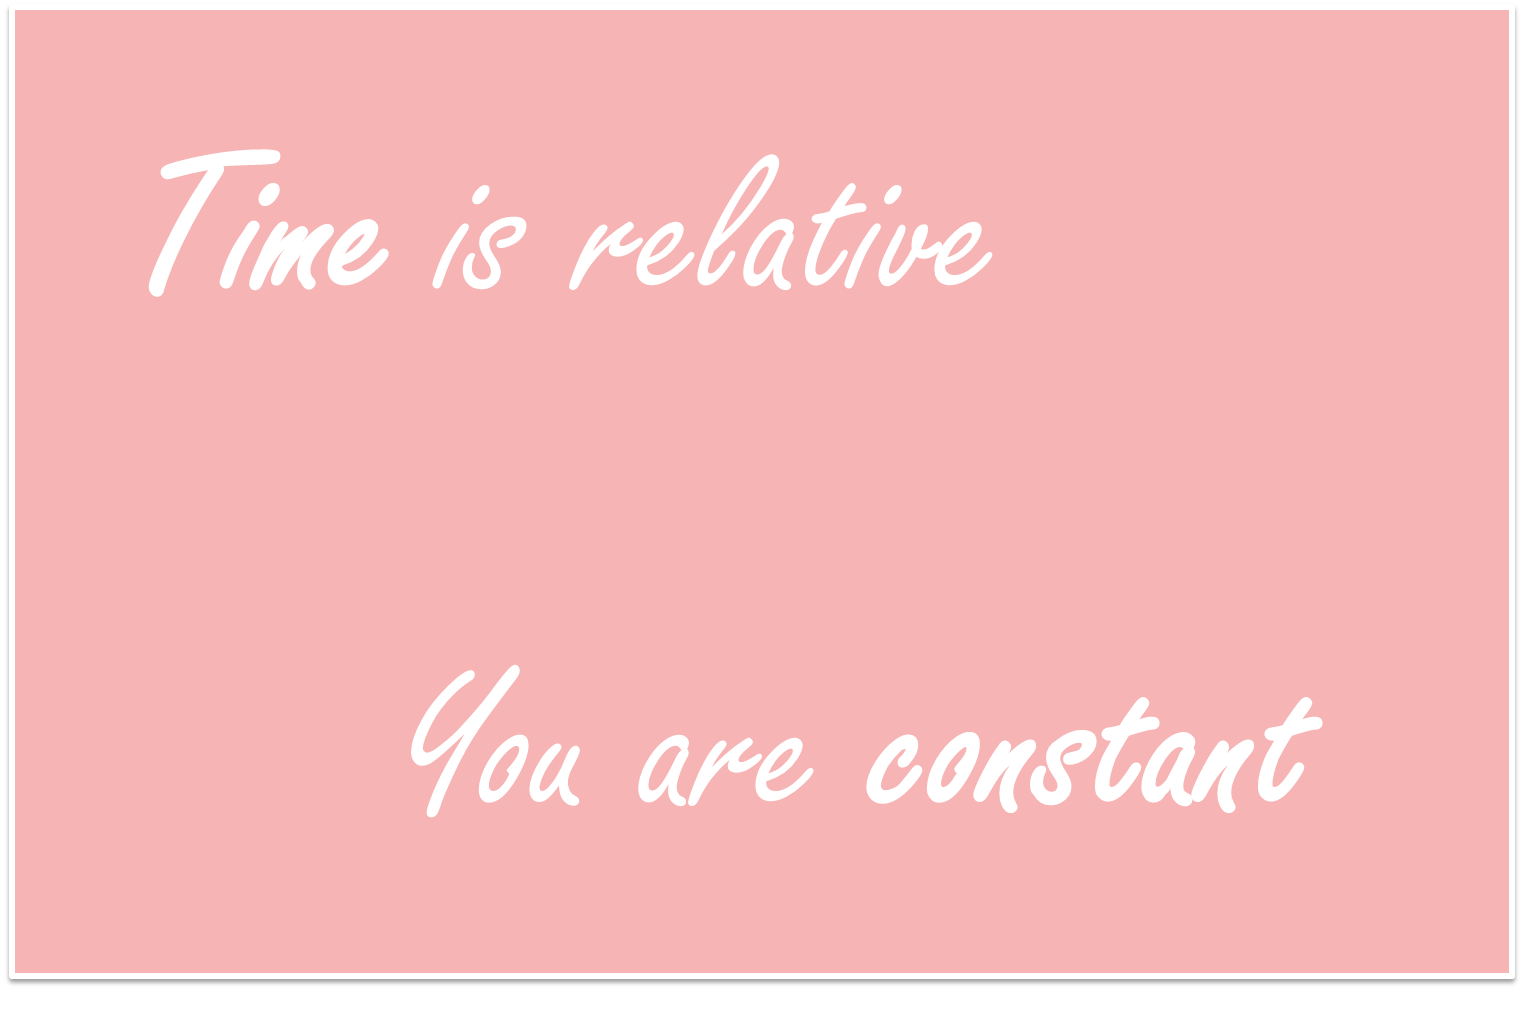 Time is relative You are constant